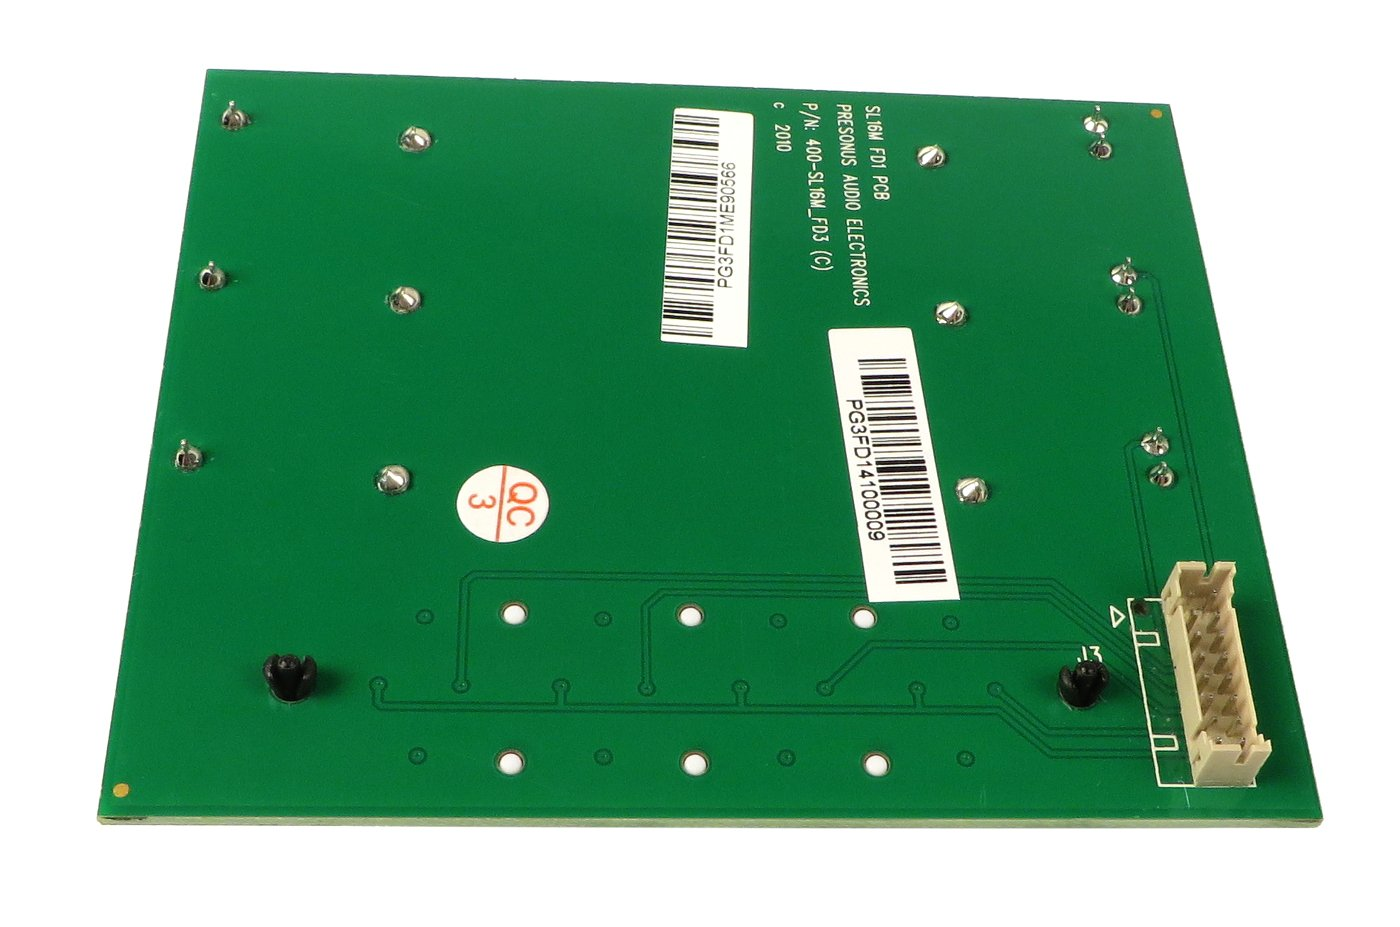 3 Channel Fader Bank PCB Assembly for StudioLive 16.0.2